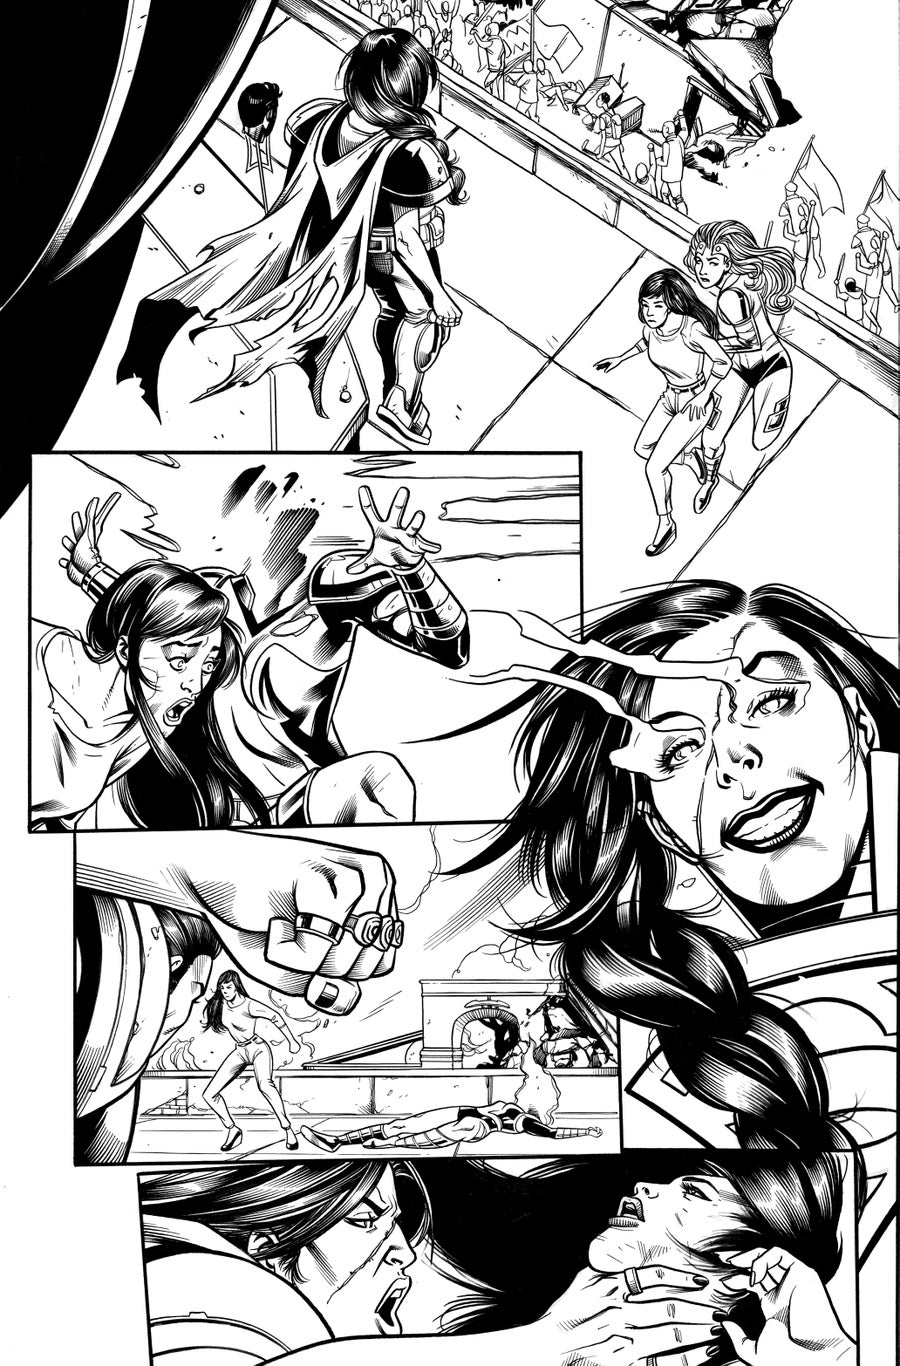 Image of Dark Knights: Death Metal: The Last 52: War of the Multiverses: Lois (2020) #1 PG 5